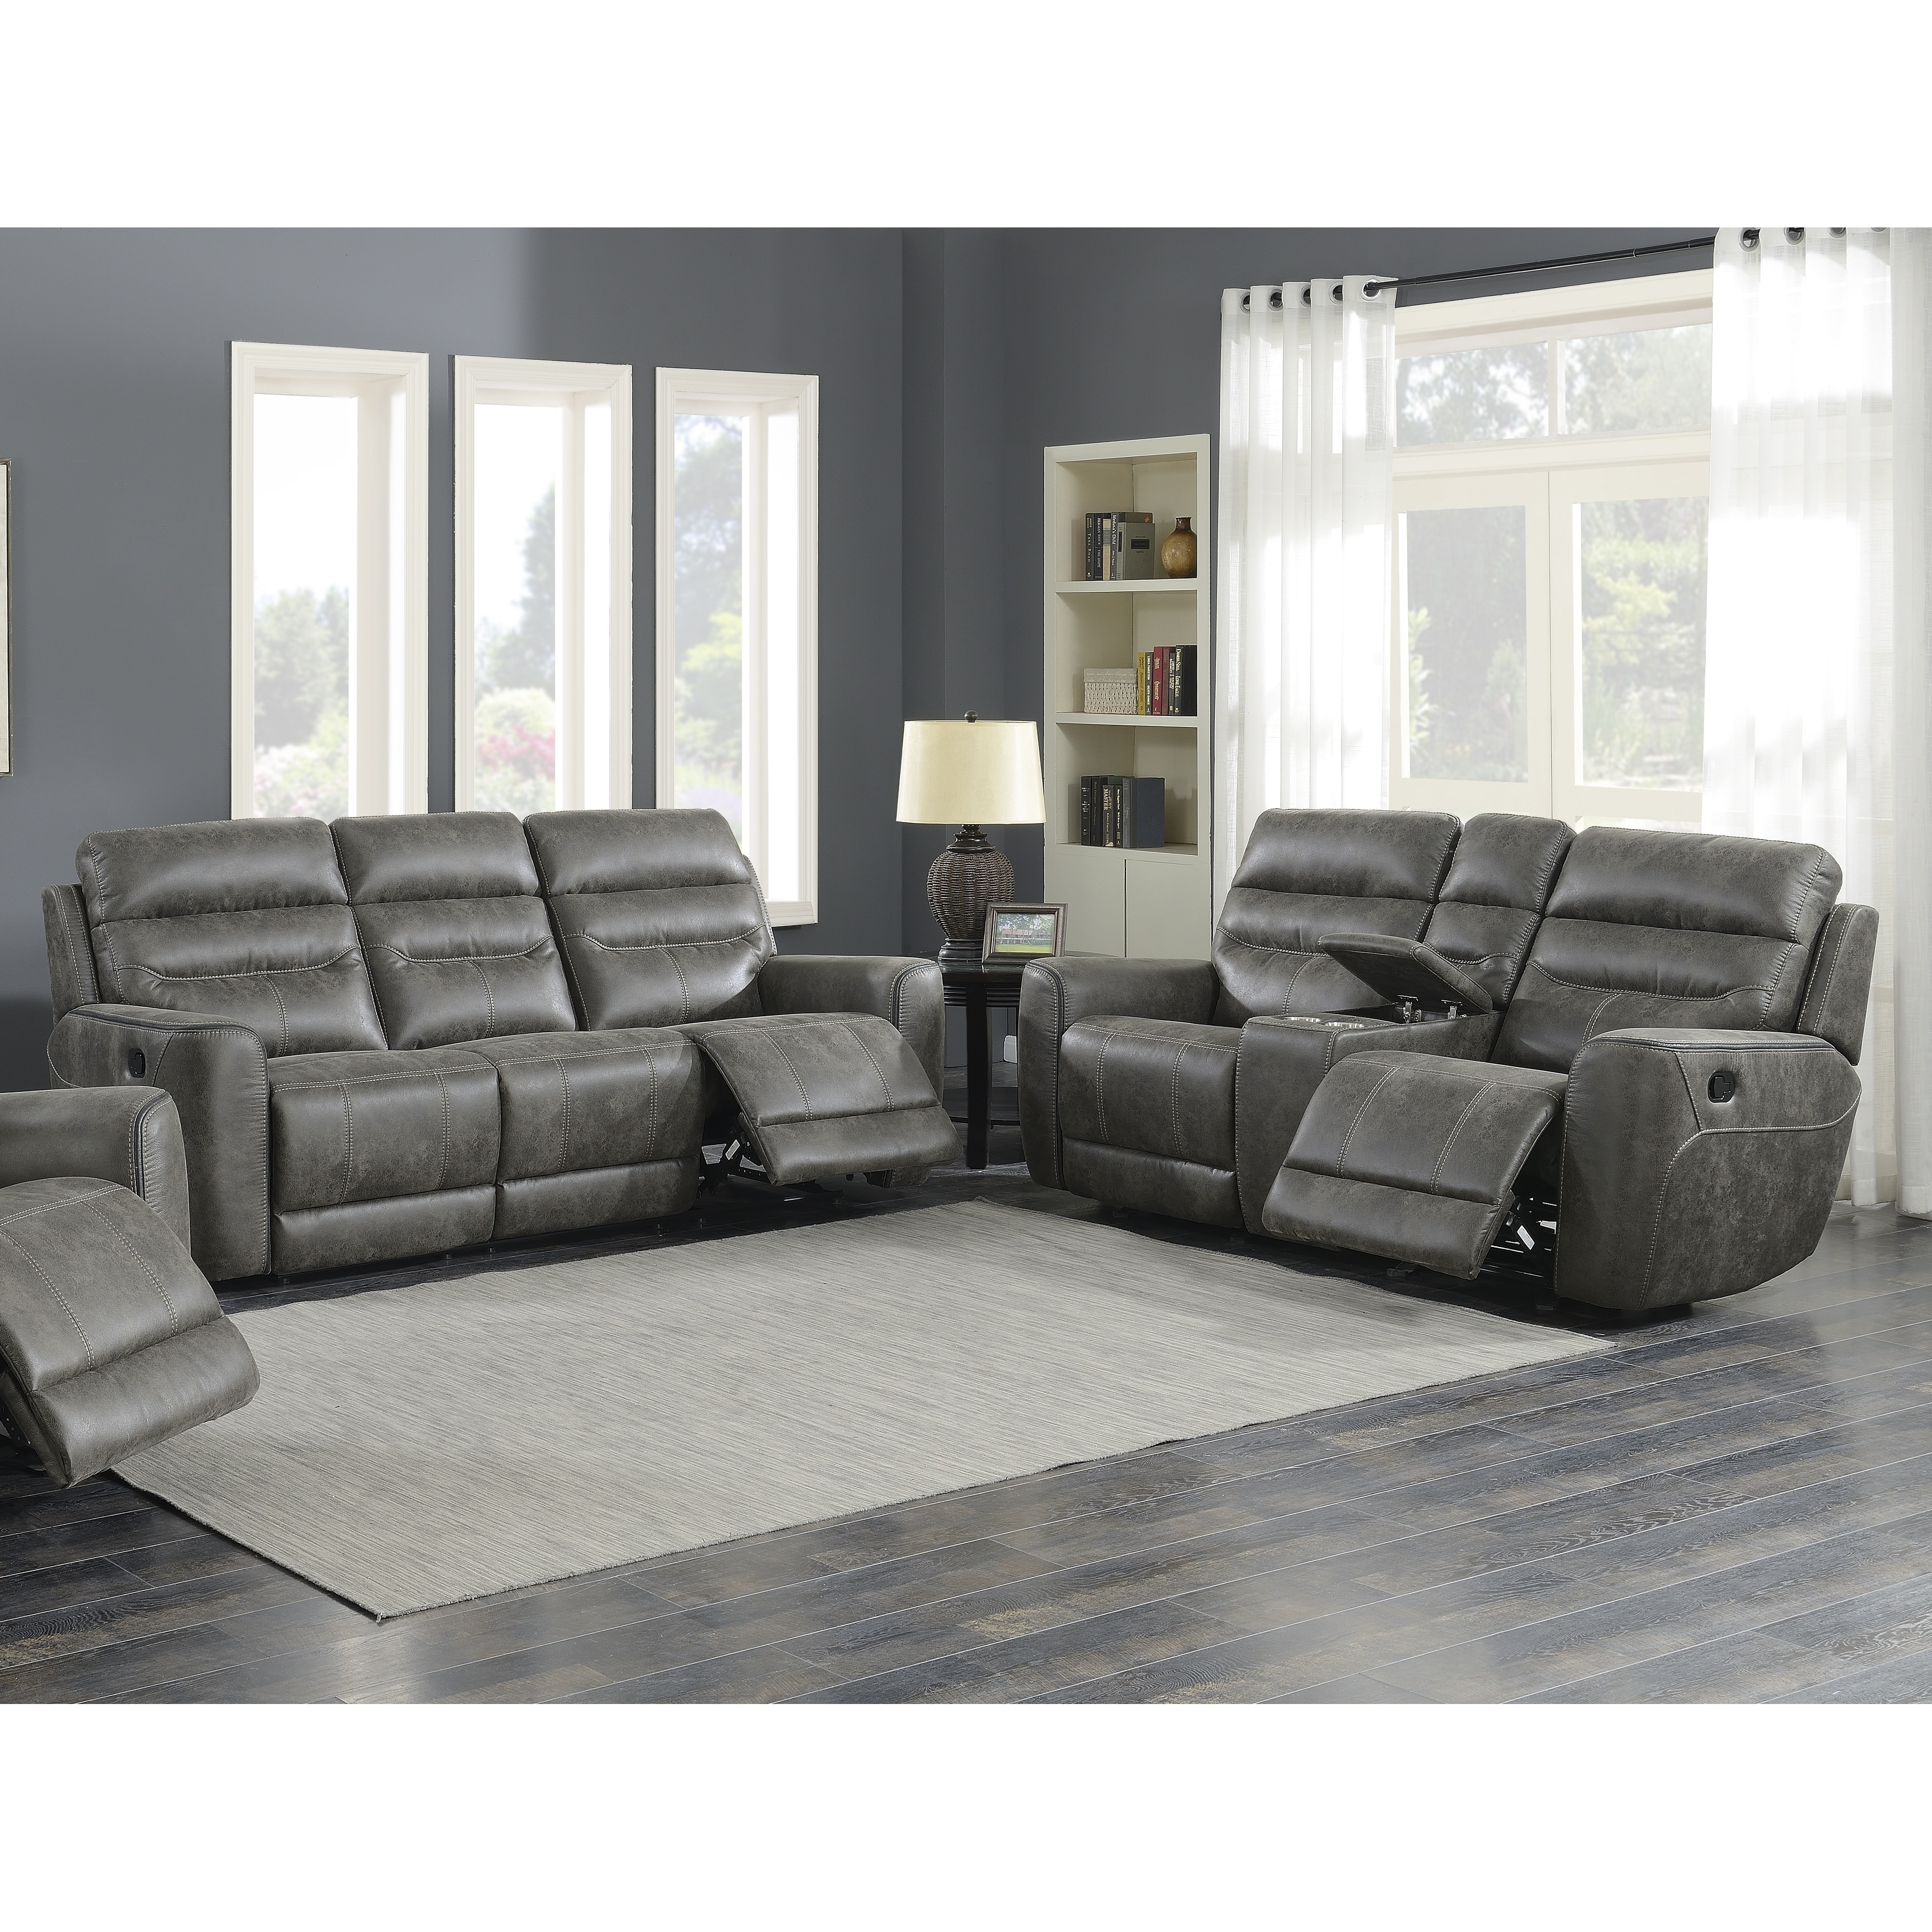 Pleasant Sintra Charcoal Faux Leather Manual Reclining Sofa And Bralicious Painted Fabric Chair Ideas Braliciousco